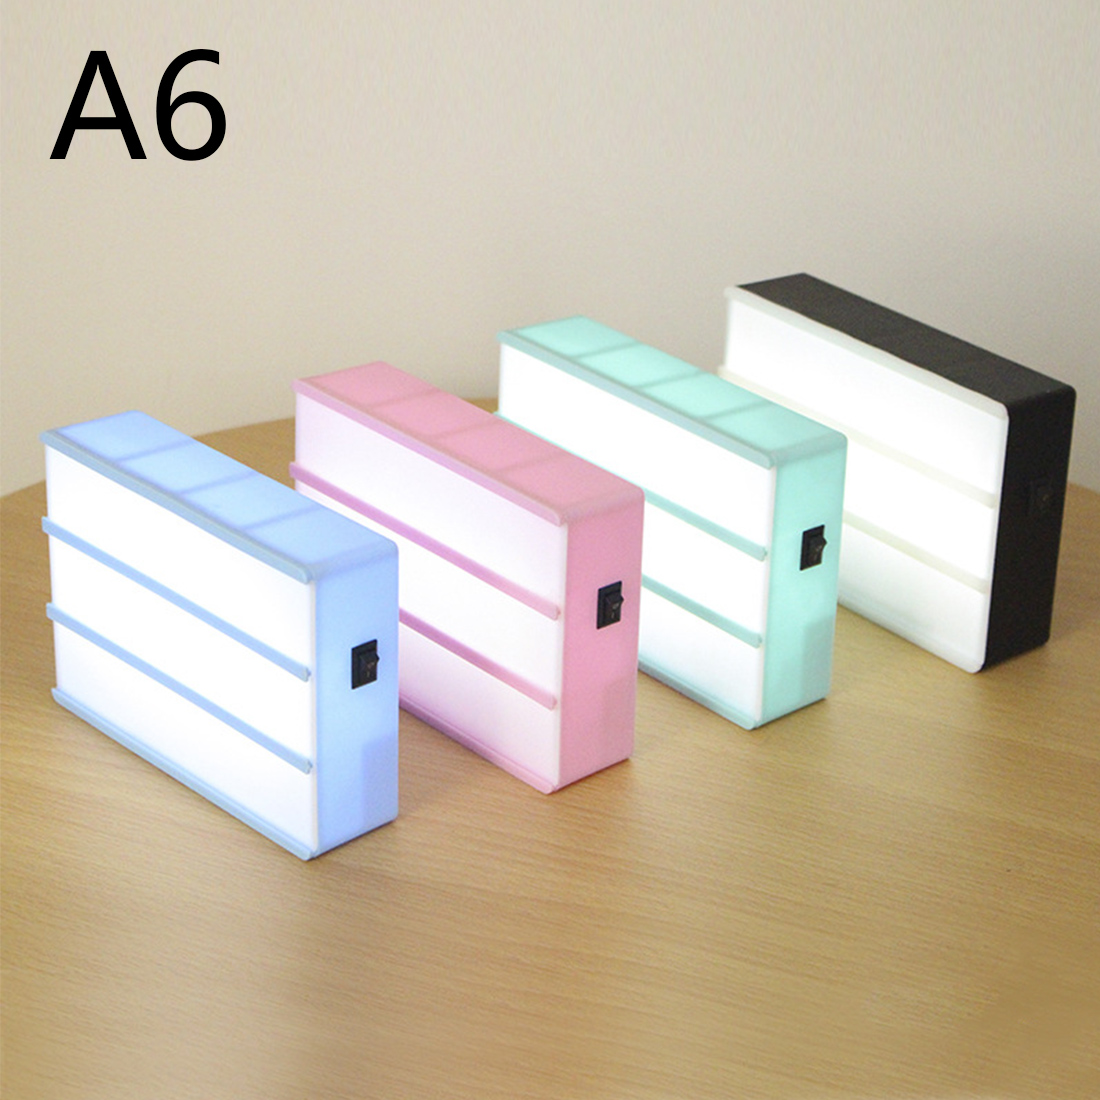 A6 Size AAA Battery LED Combination Night Light Box DIY Letters Symbol Cards Decoration Lamp Message Board Lightbox